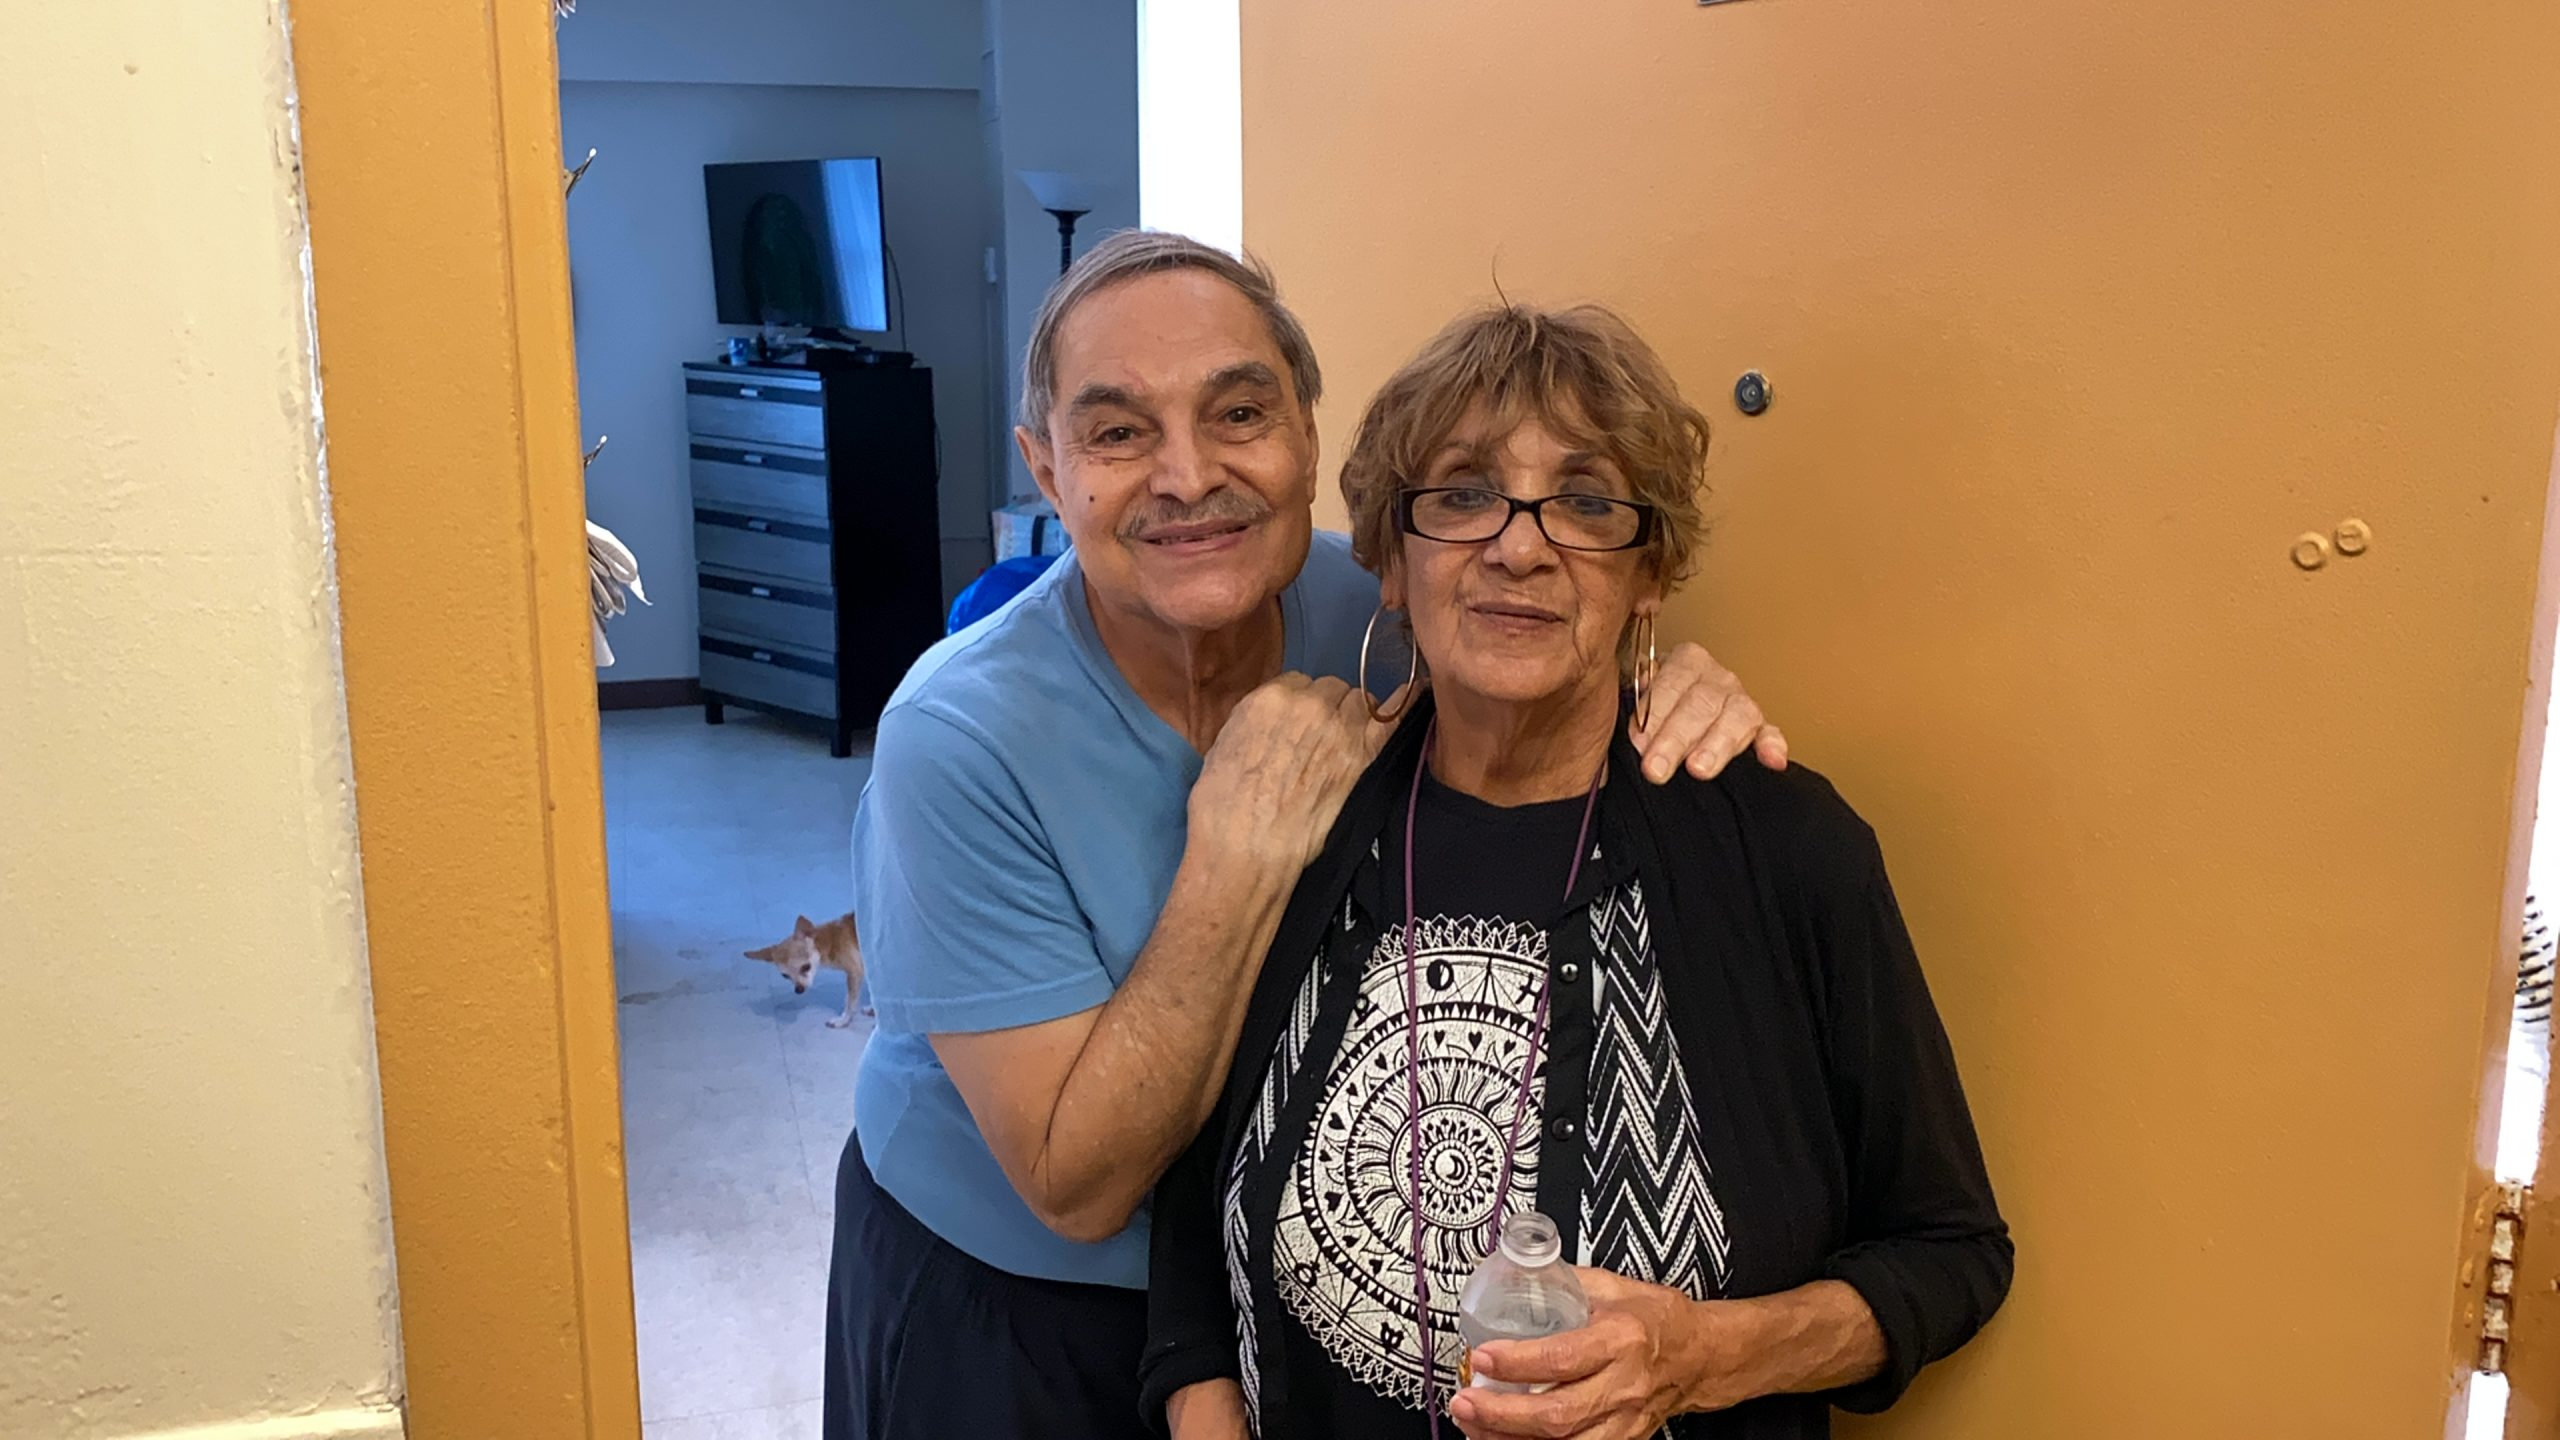 """""""I thank God every day for being here,"""" Priscilla Martinez said when reflecting on her life at Four Freedoms House in Miami Beach. She lives on low income and says the affordability of her home is a blessing."""